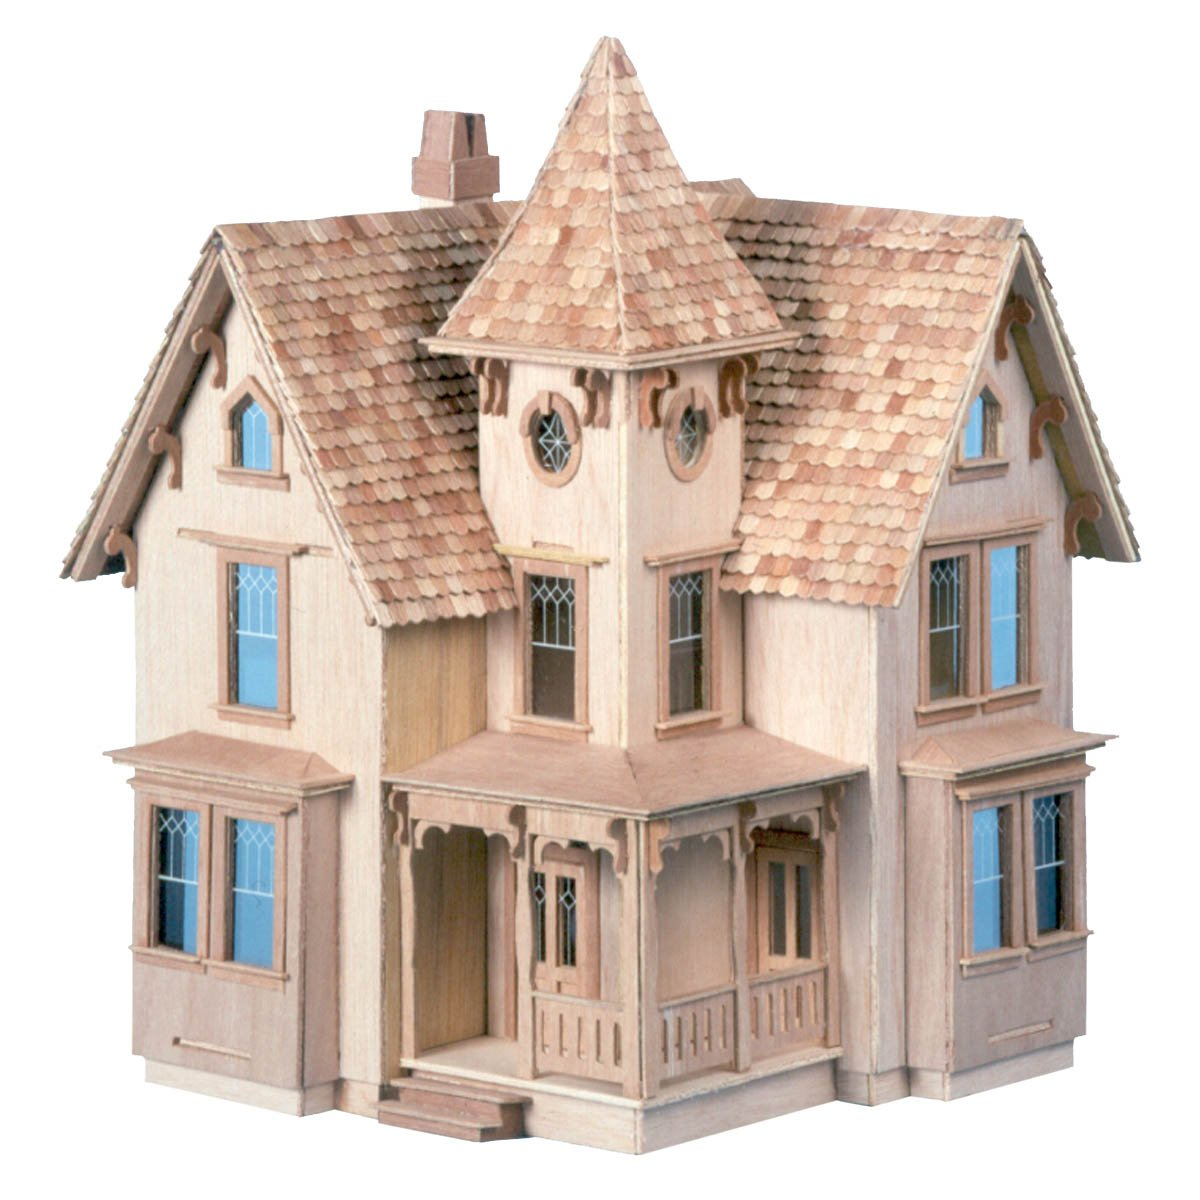 Skarla 39 s variety shop deals 1 24 scale victorian for Build your house online